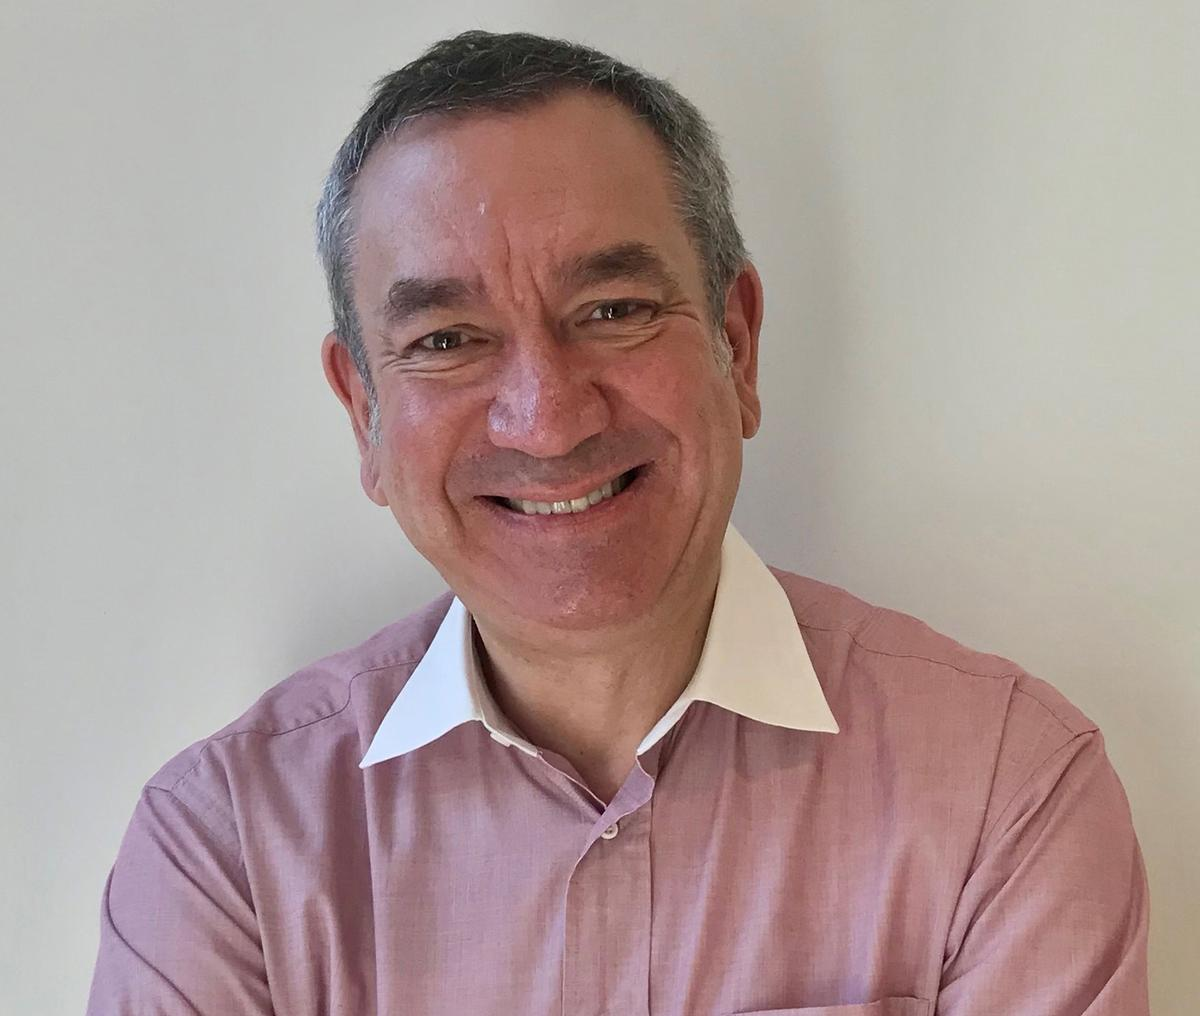 Hervé Bouvier has been appointed as Comfort Zone's global brand director.